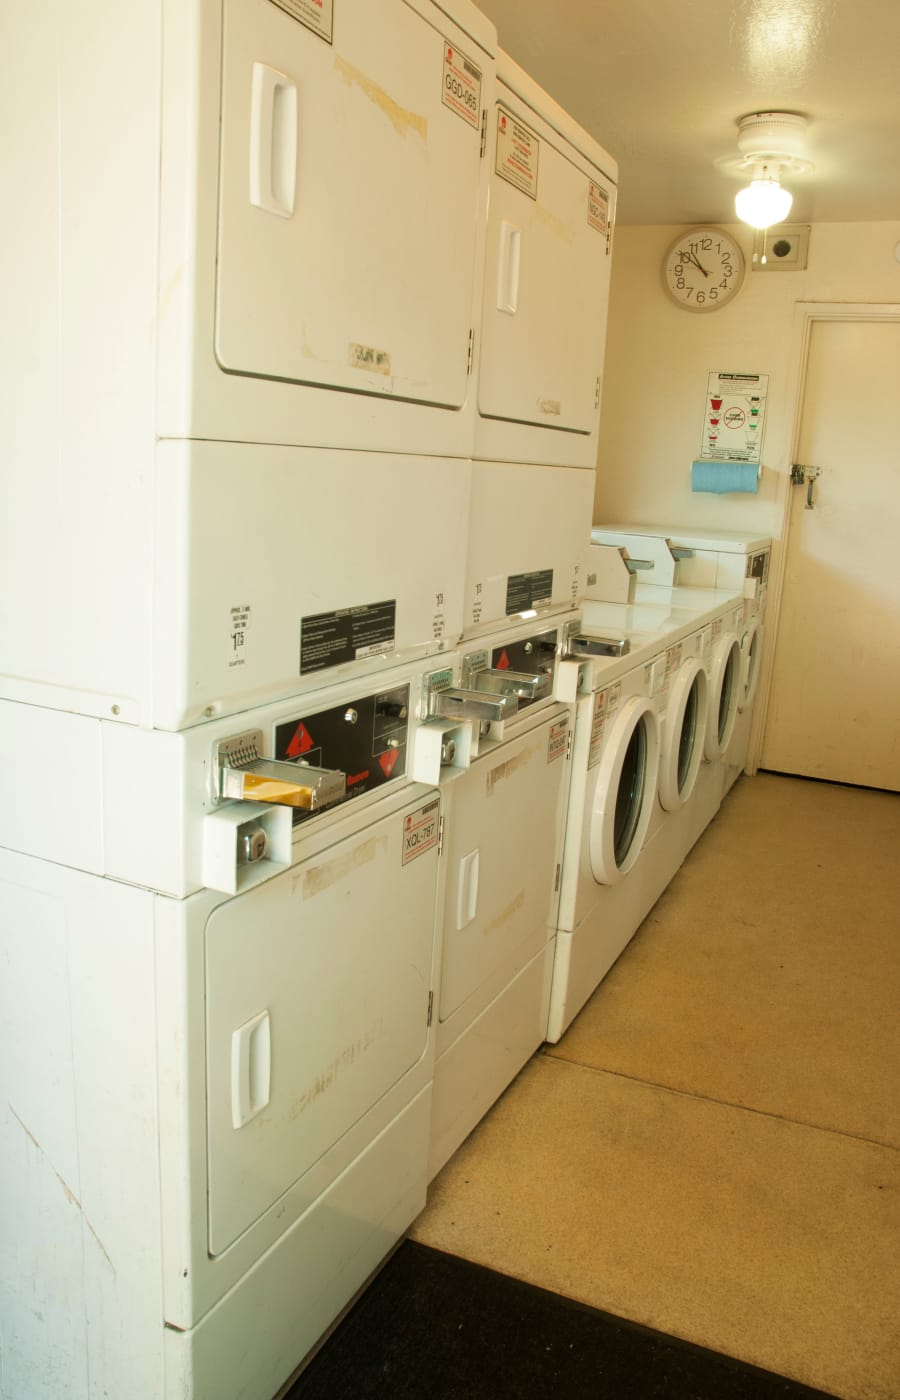 Laundry facility at Buchanan Gardens in Antioch, California